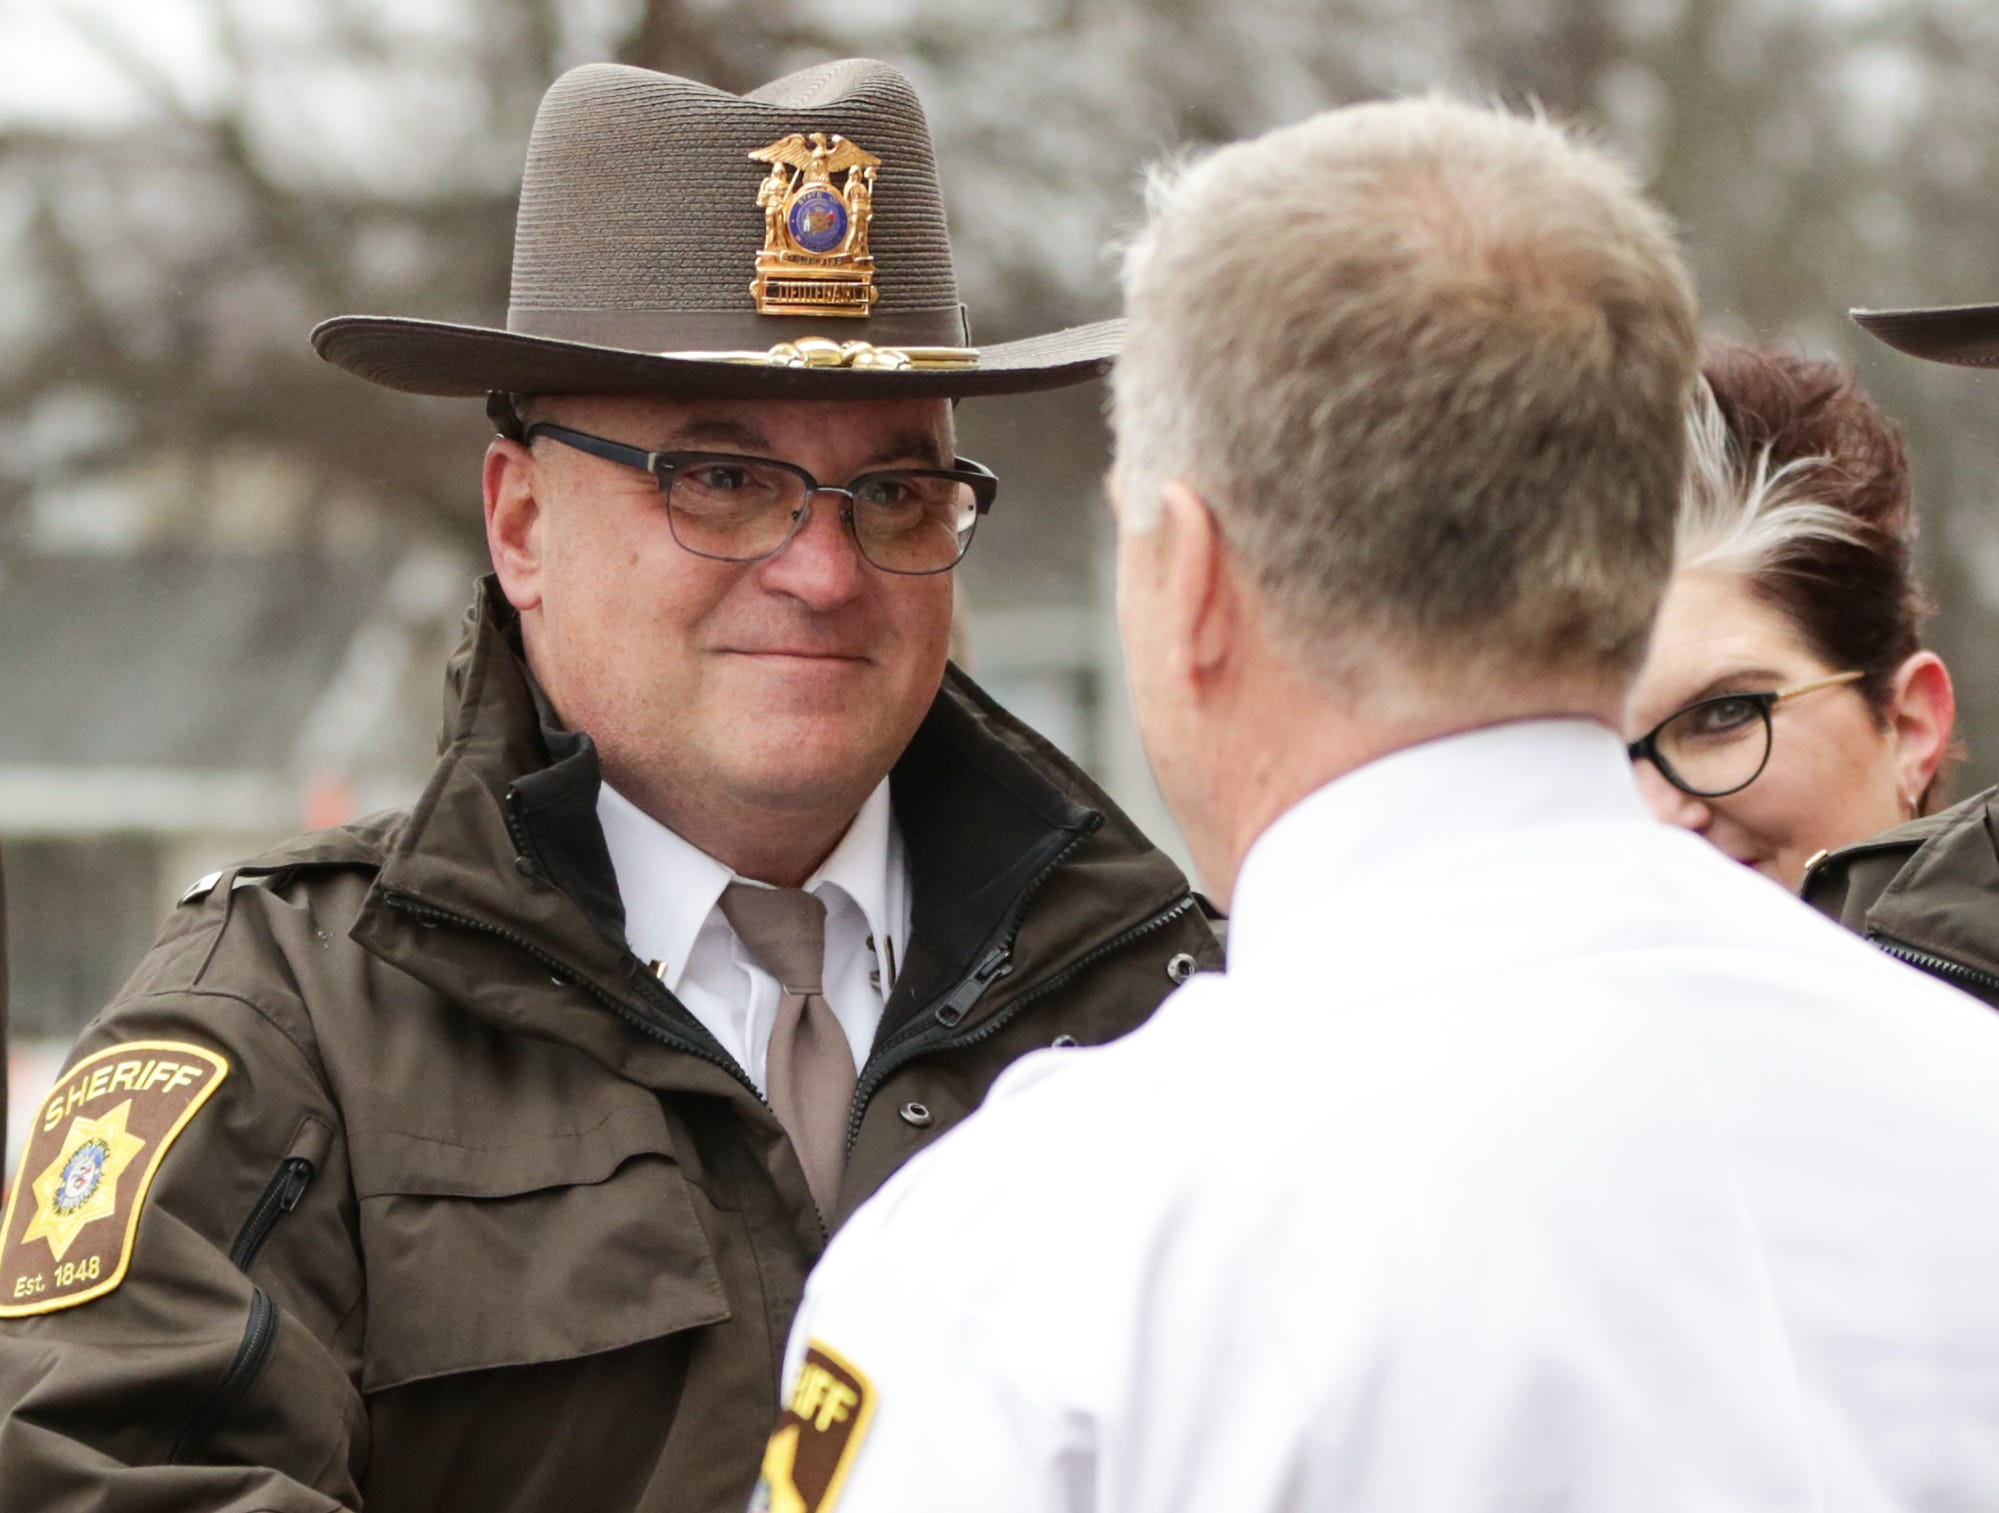 Retiring Fond du Lac County Sheriff Mick Fink shakes hands with Fond du Lac County Sheriff's Office Lieutenant Mike Nolan Monday, January 7, 2019 during Fink's ramp walk which is a department tradition for retiring personel. Fink retired from the position of Fond du Lac County Sheriff after serving for 12 years. Submitted by Roxanne Abler/USA TODAY NETWORK-Wisconsin